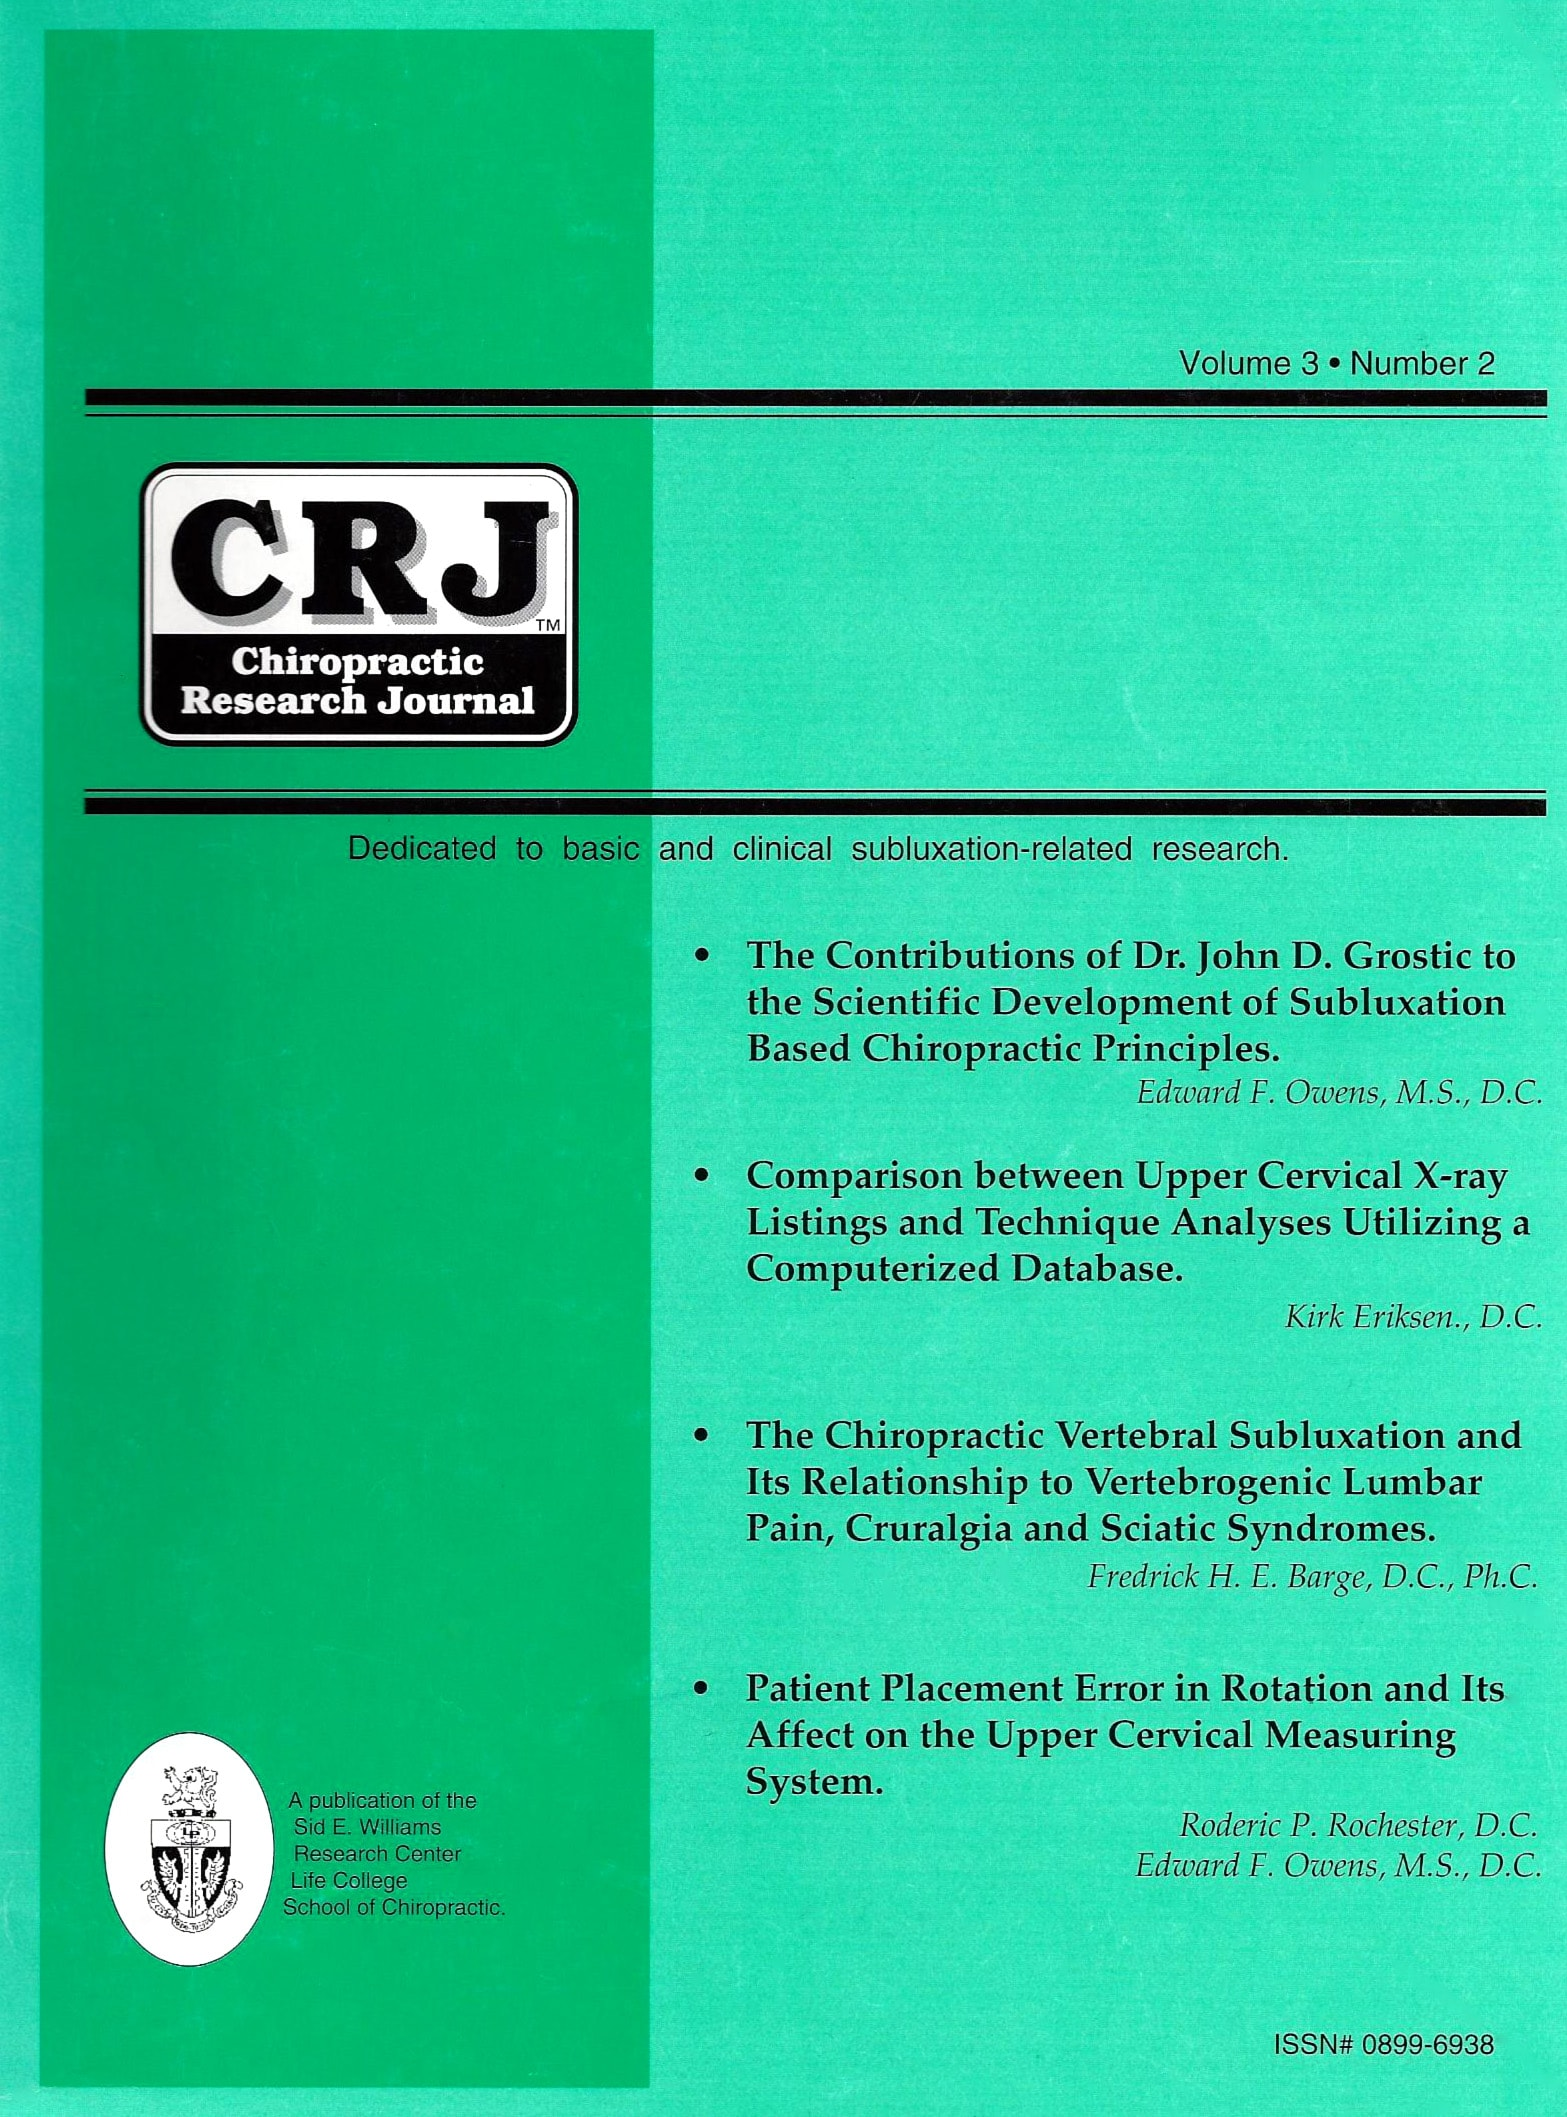 Chiropractic Research Journal Volume 3 Number 2